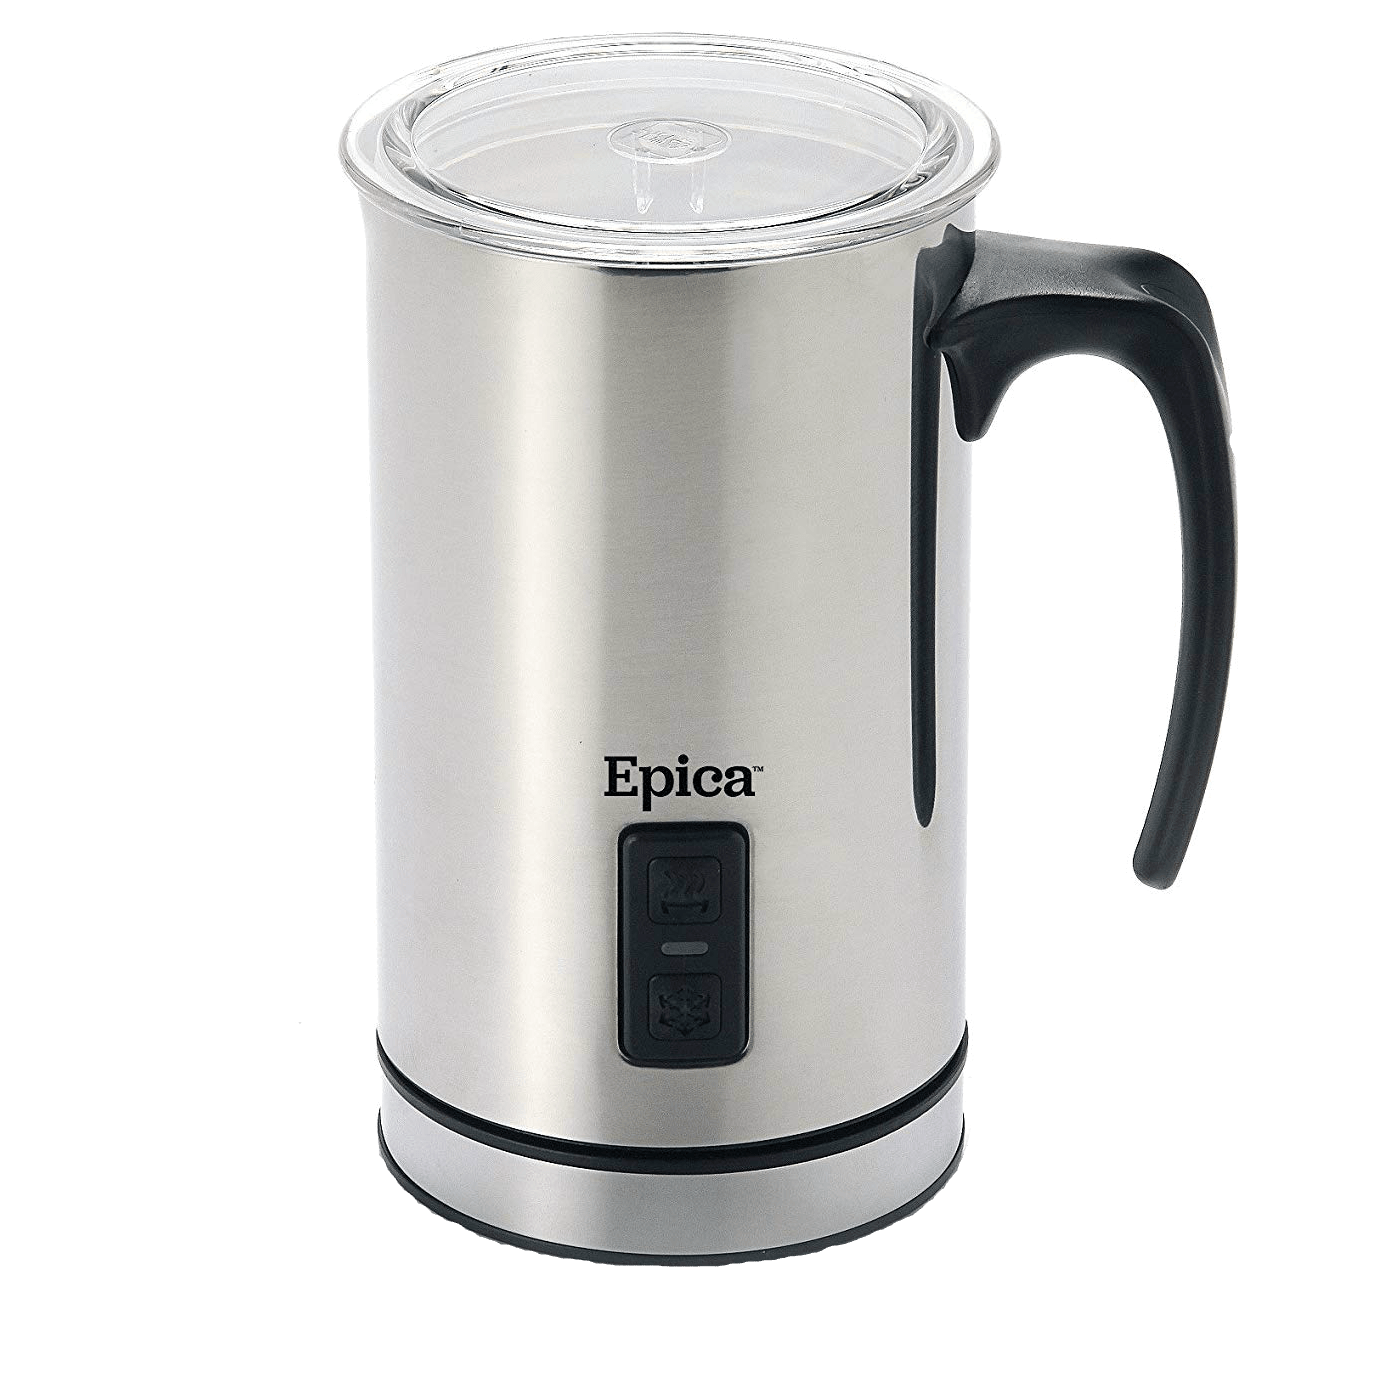 Review Of Epica Electric Milk Frother And Heater Carafe